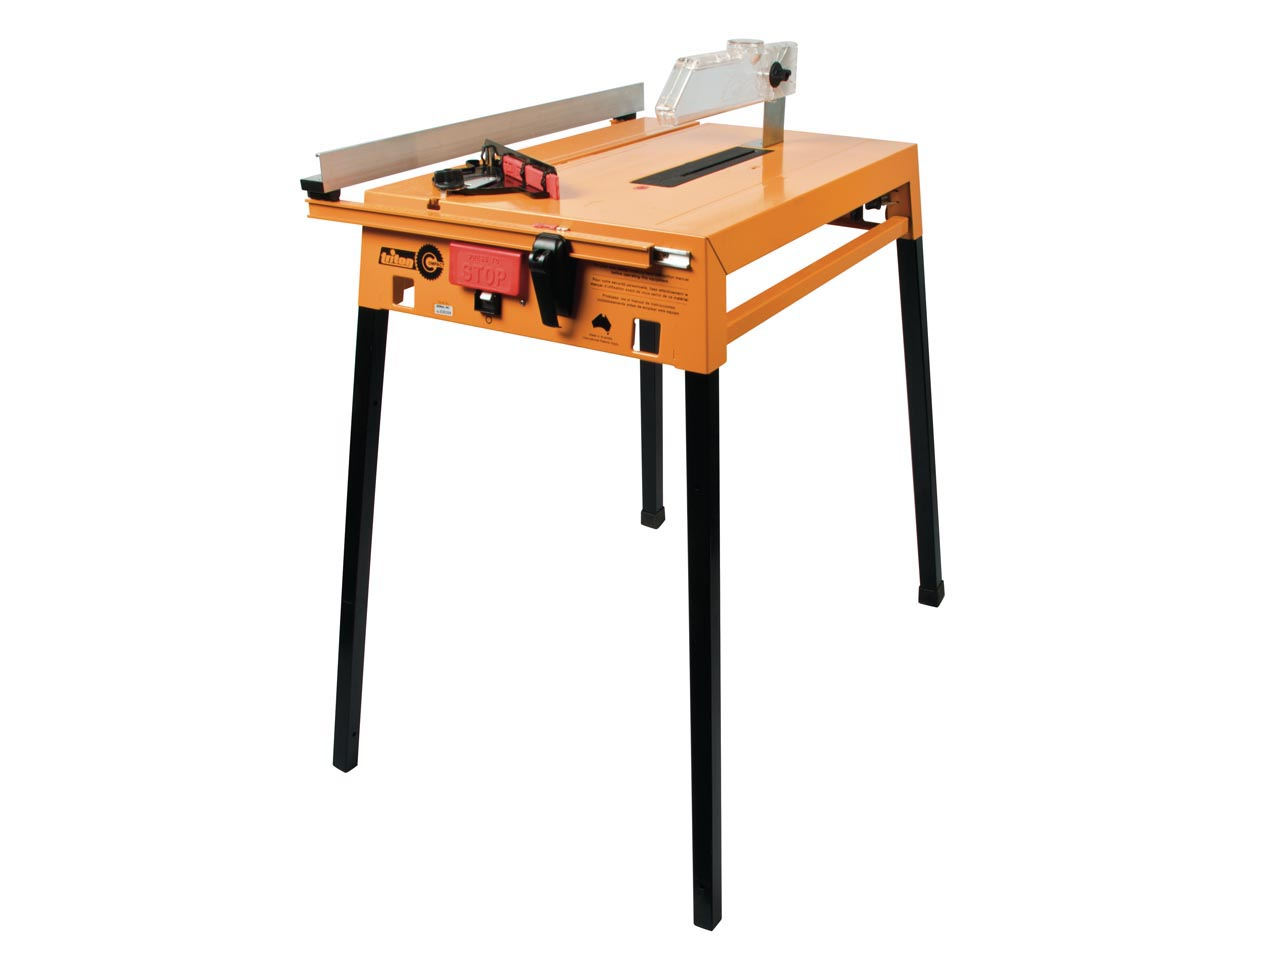 Table saw parts ebay stores akrossfo other national product sales ebay storesbench dog cast iron router table for table saw pro fencespeedyparts5 ebay storesebay buying guidesebay bulk keyboard keysfo Gallery